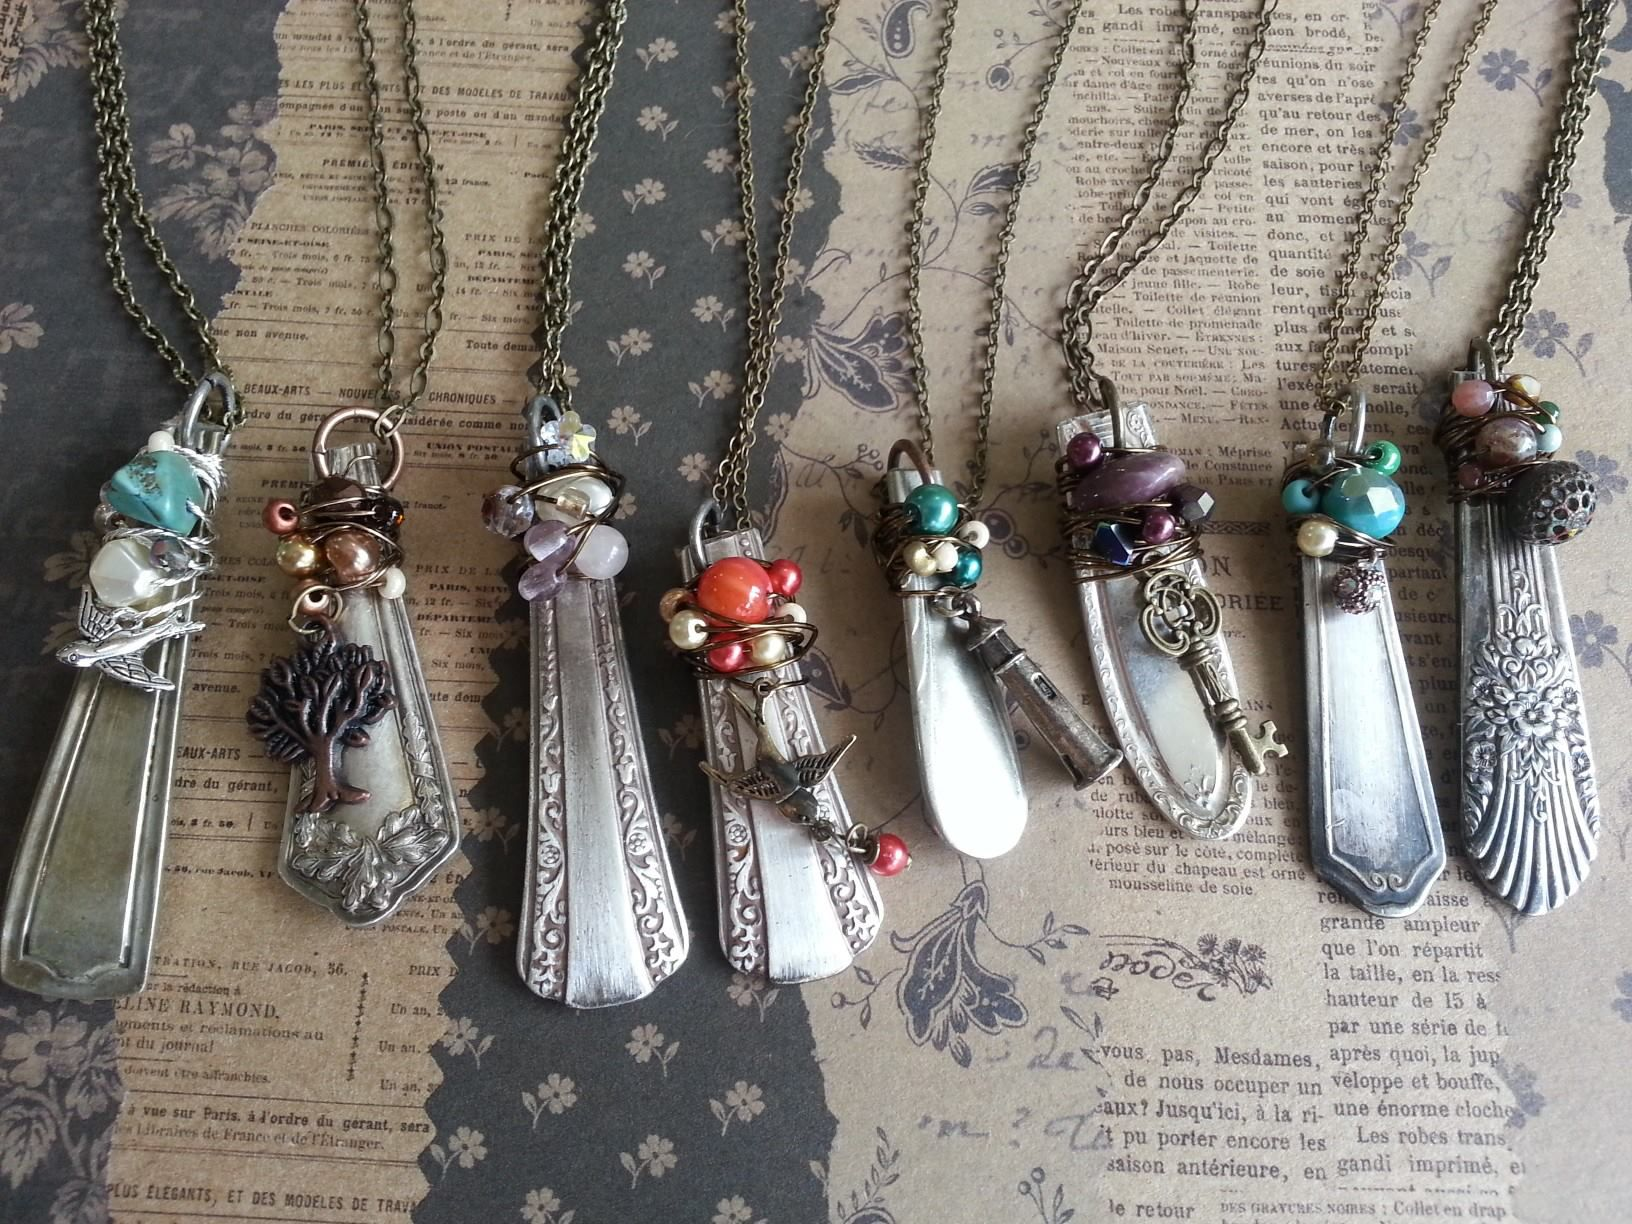 It's an image only, but these up-cycled spoon pendants are ...